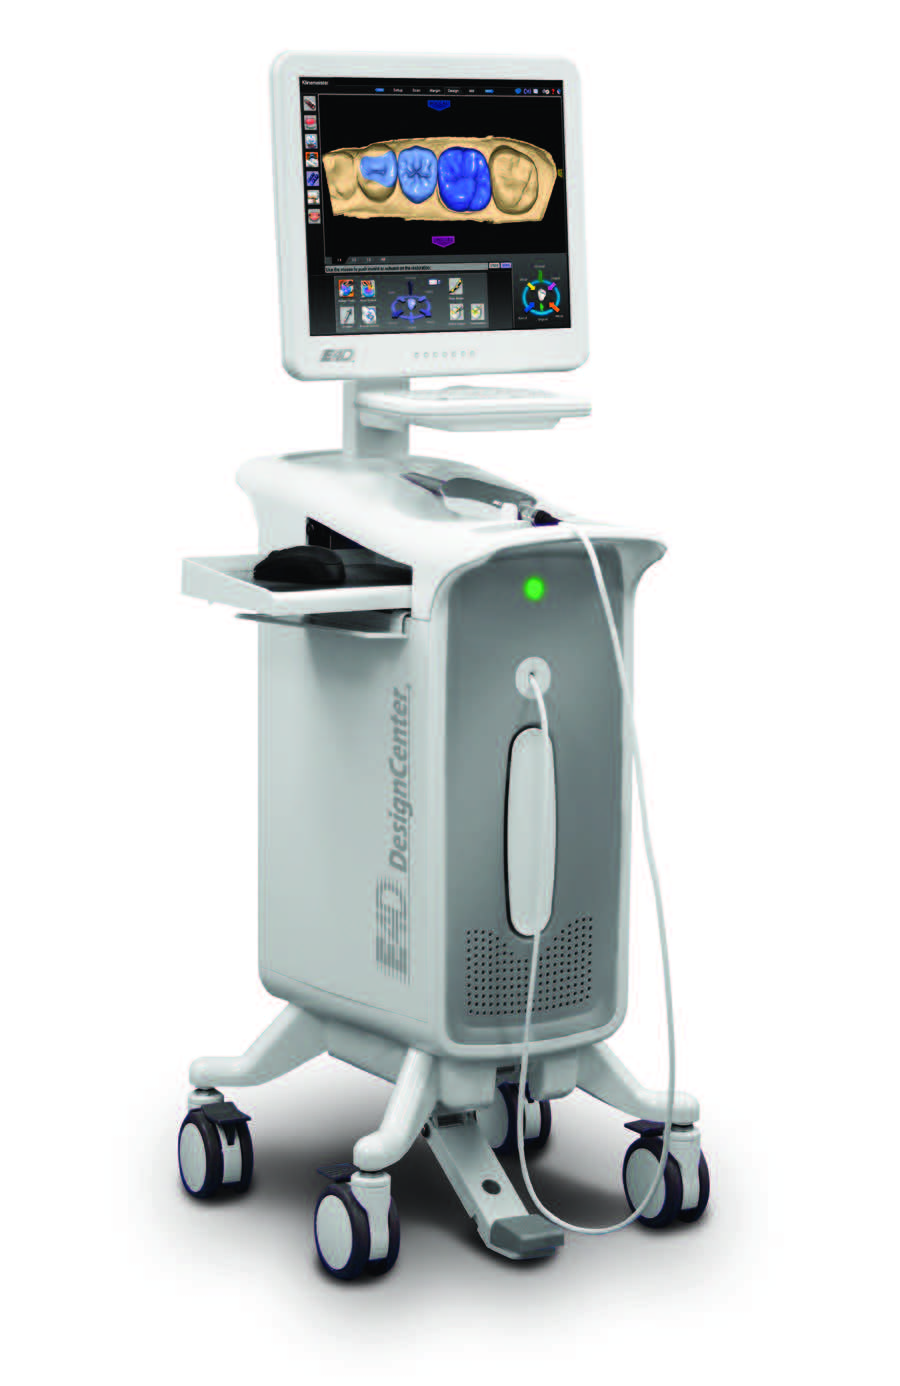 E4D Dentist System, an innovative and advanced chairside CAD/CAM technology.